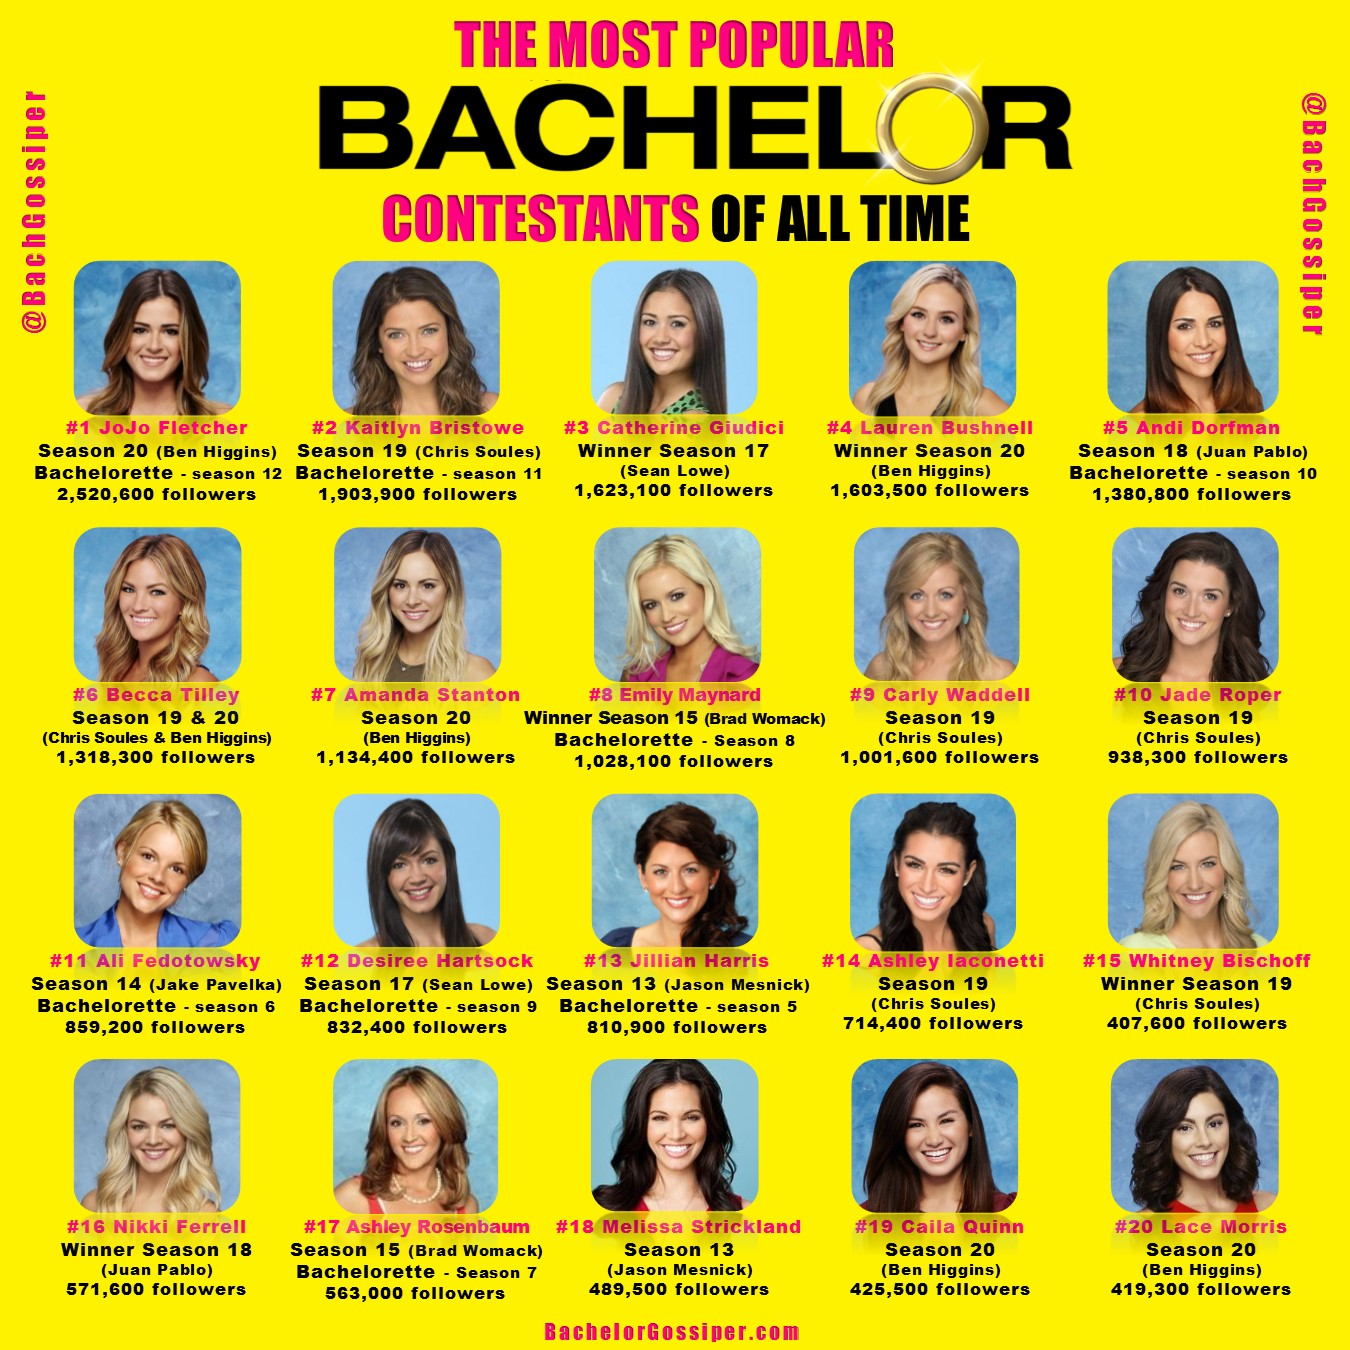 Most Popular Bachelor Contestants Of All Time